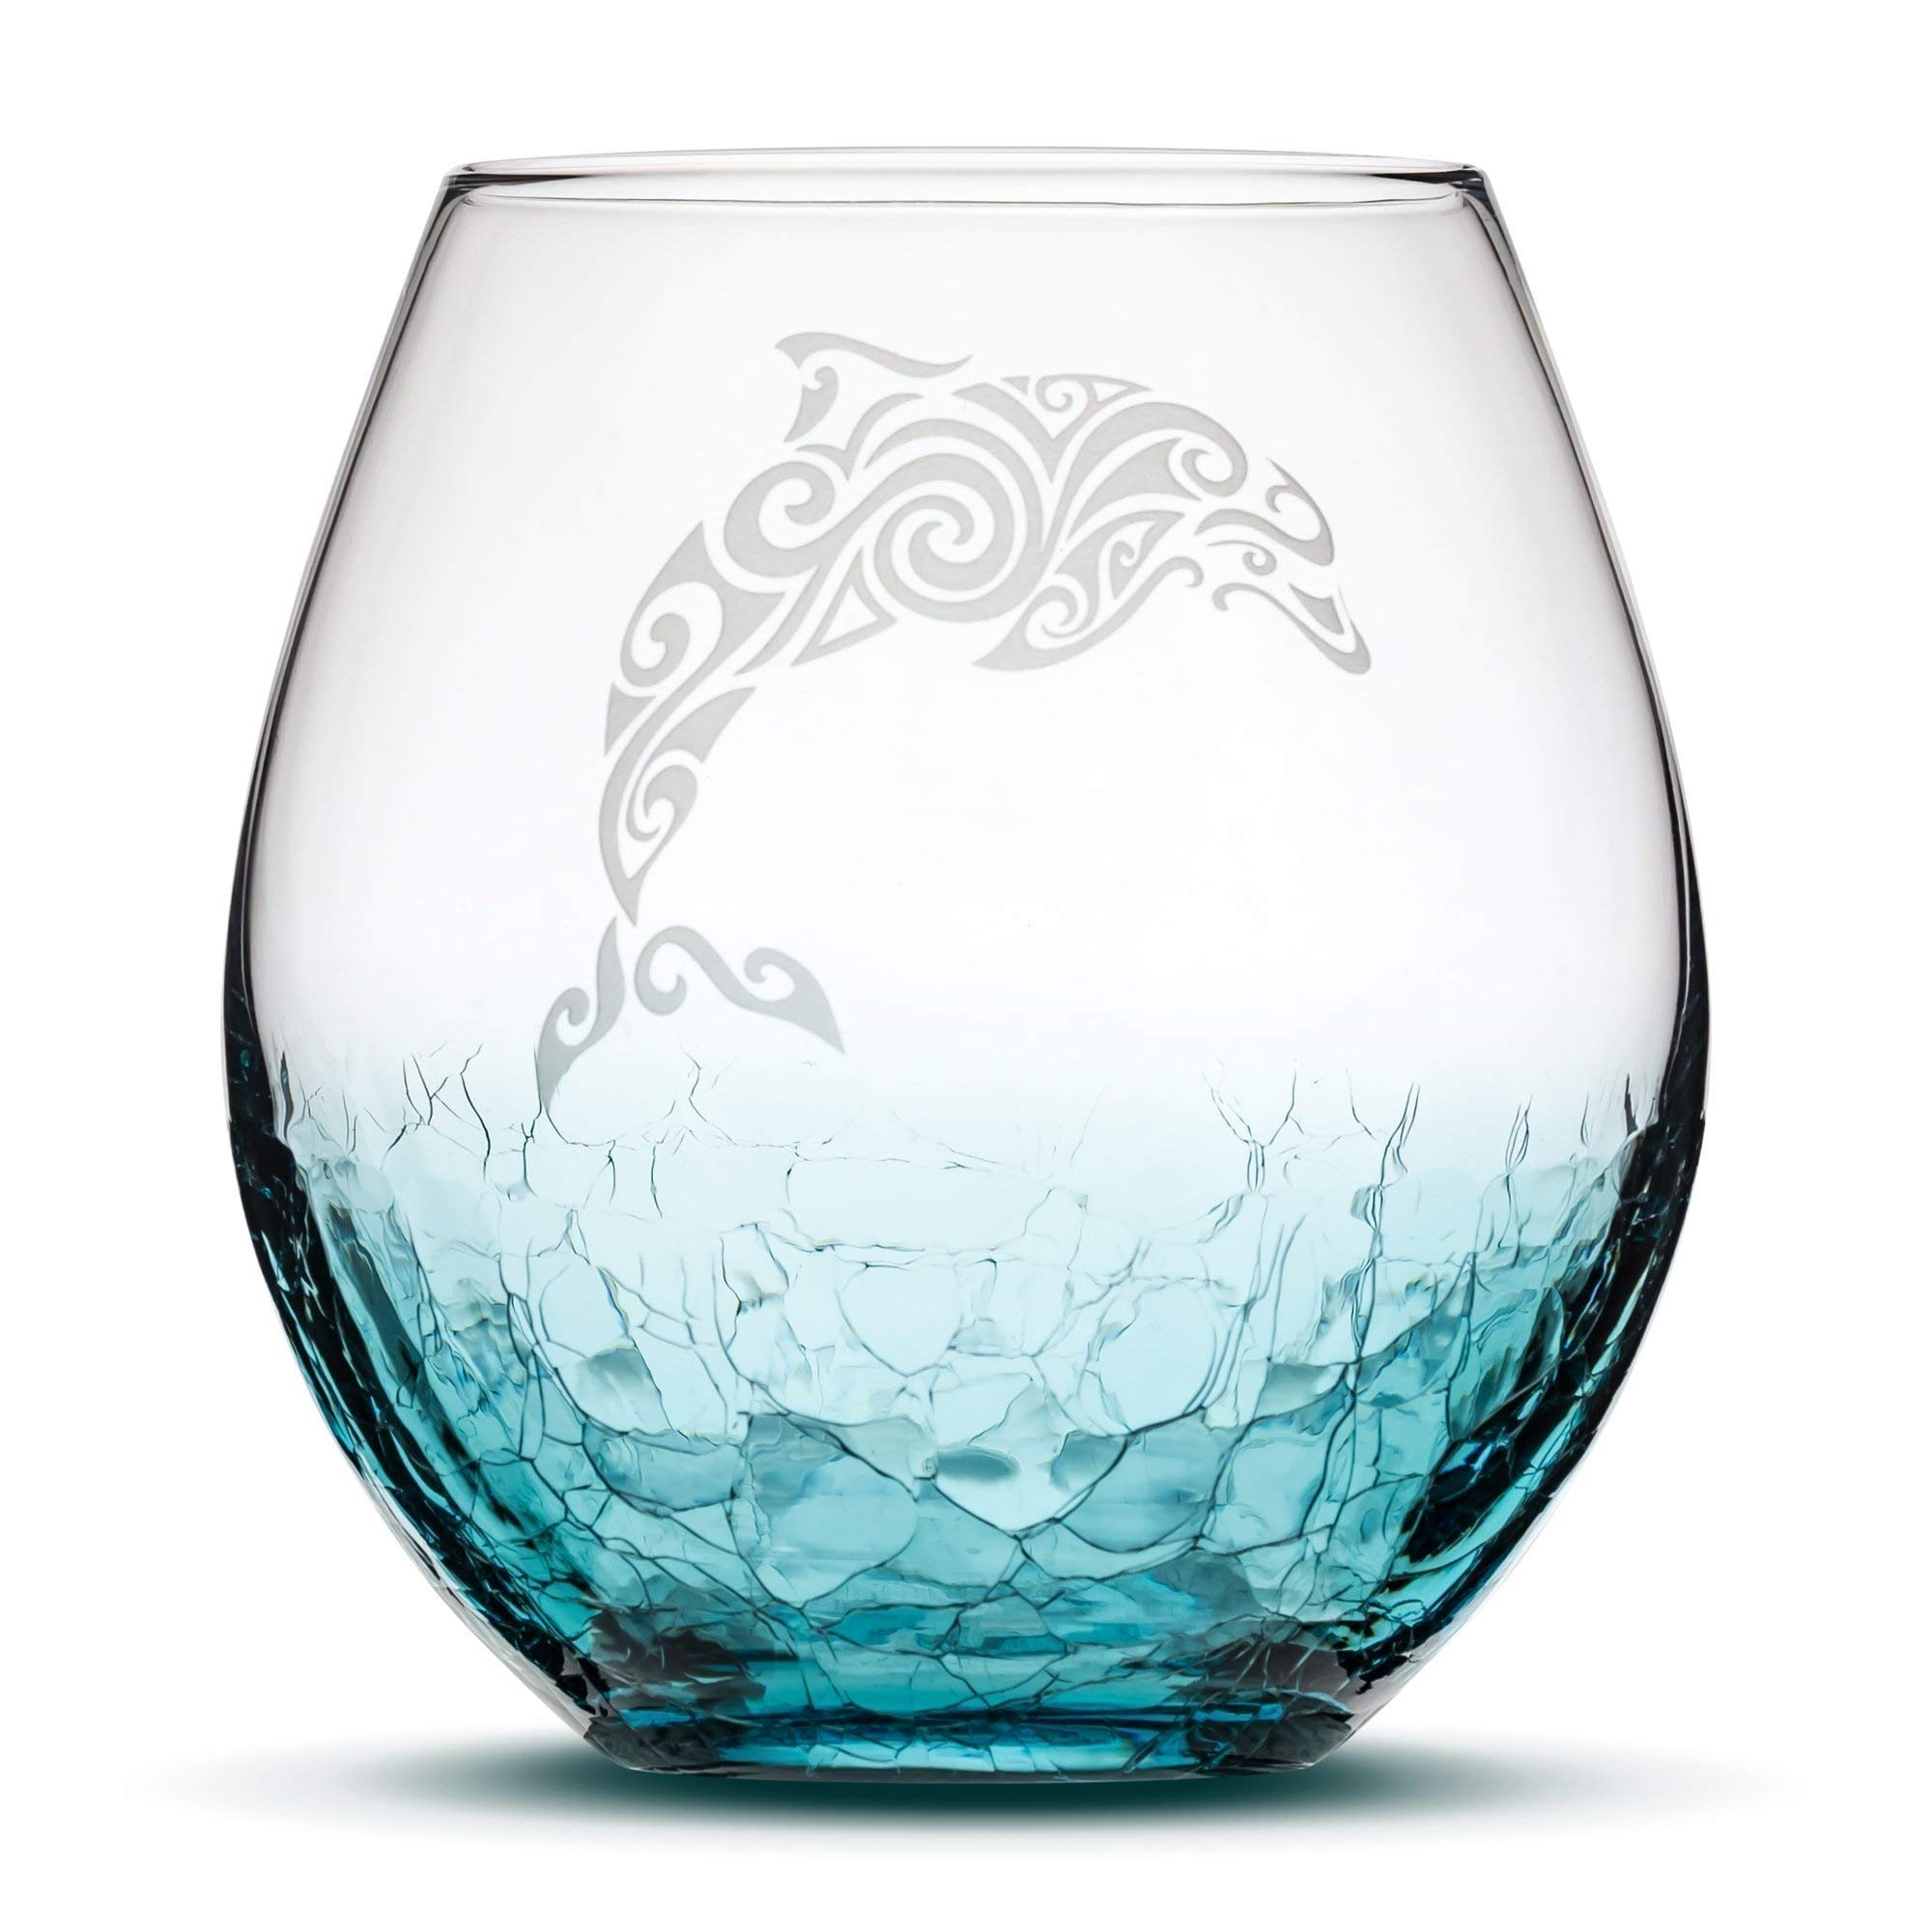 Crackle Teal Stemless Wine Glass - Hand Etched Tribal Dolphin Design - Sand Carved by Integrity Bottles by Integrity Bottles (Image #1)